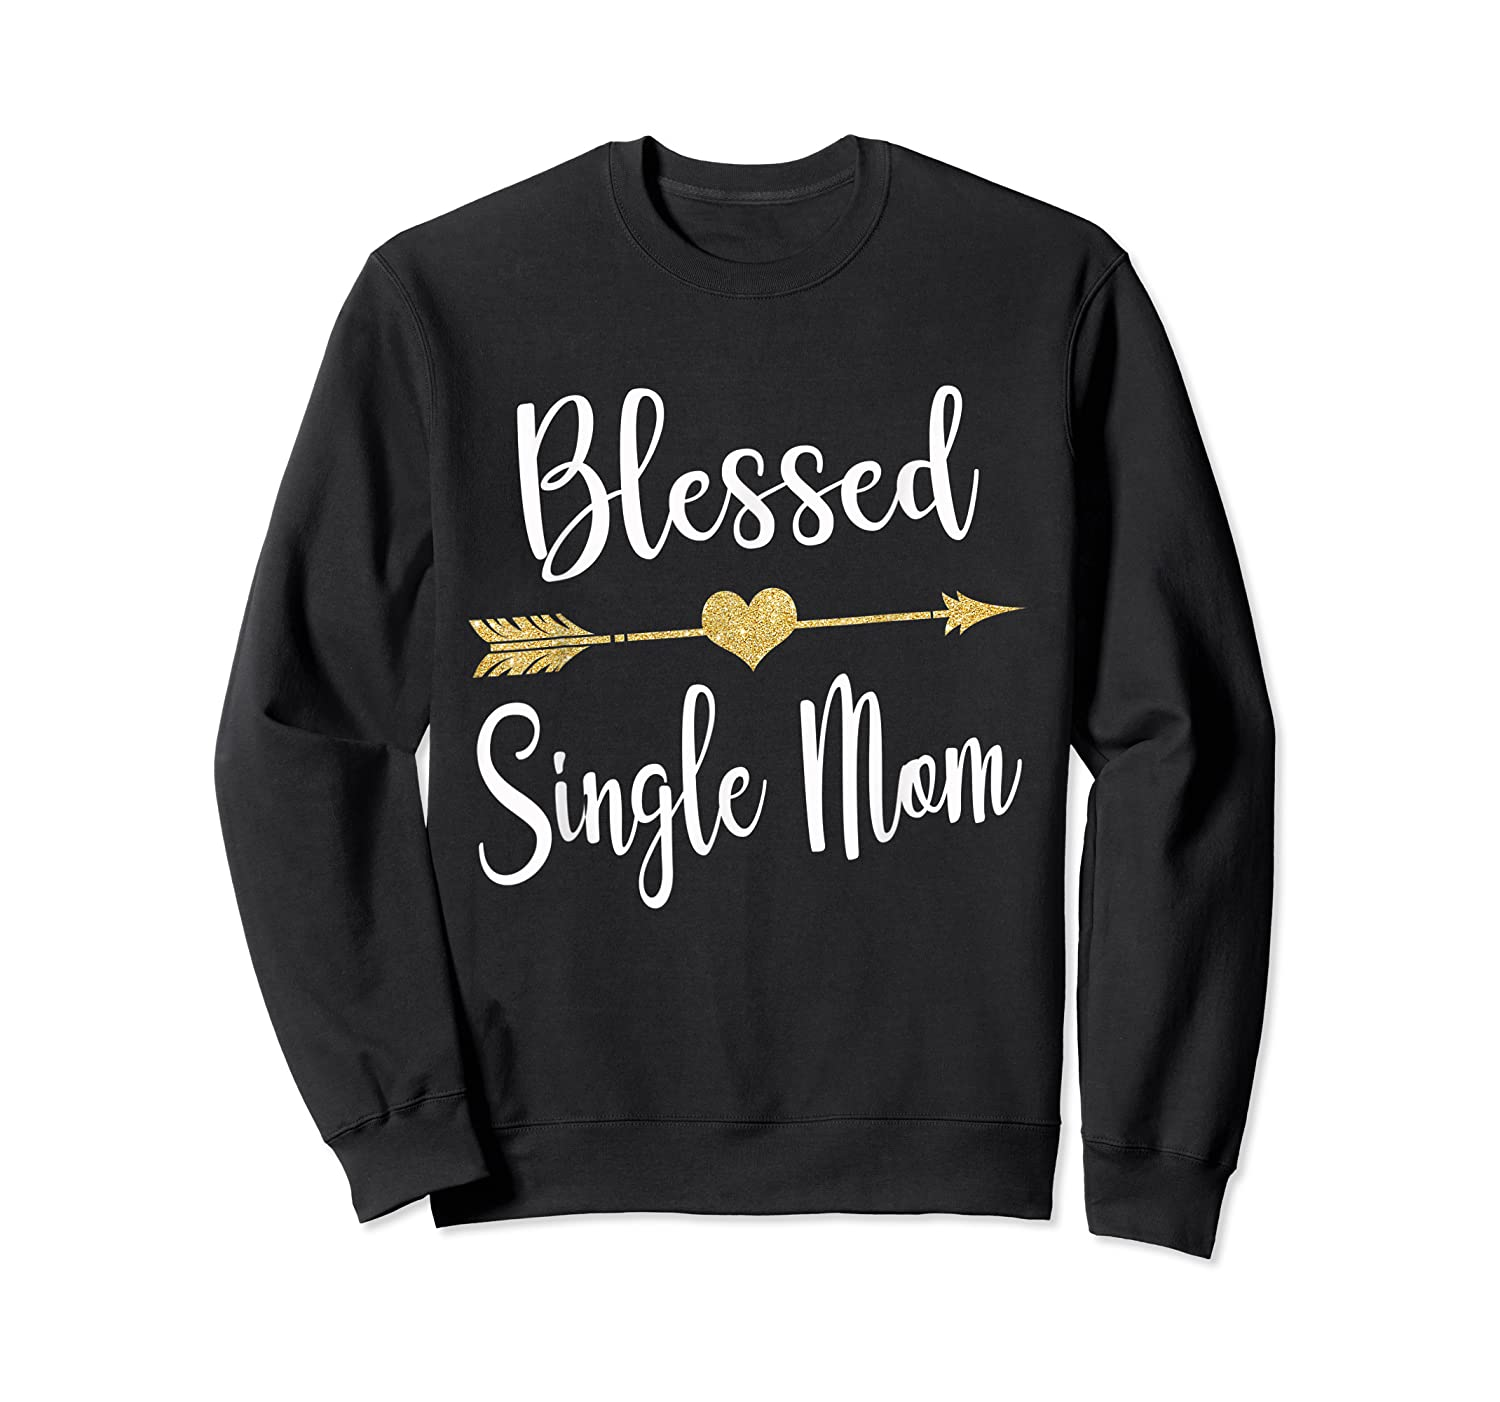 Funny Arrow Blessed Single Mom T Shirt Gift For Thanksgiving Crewneck Sweater